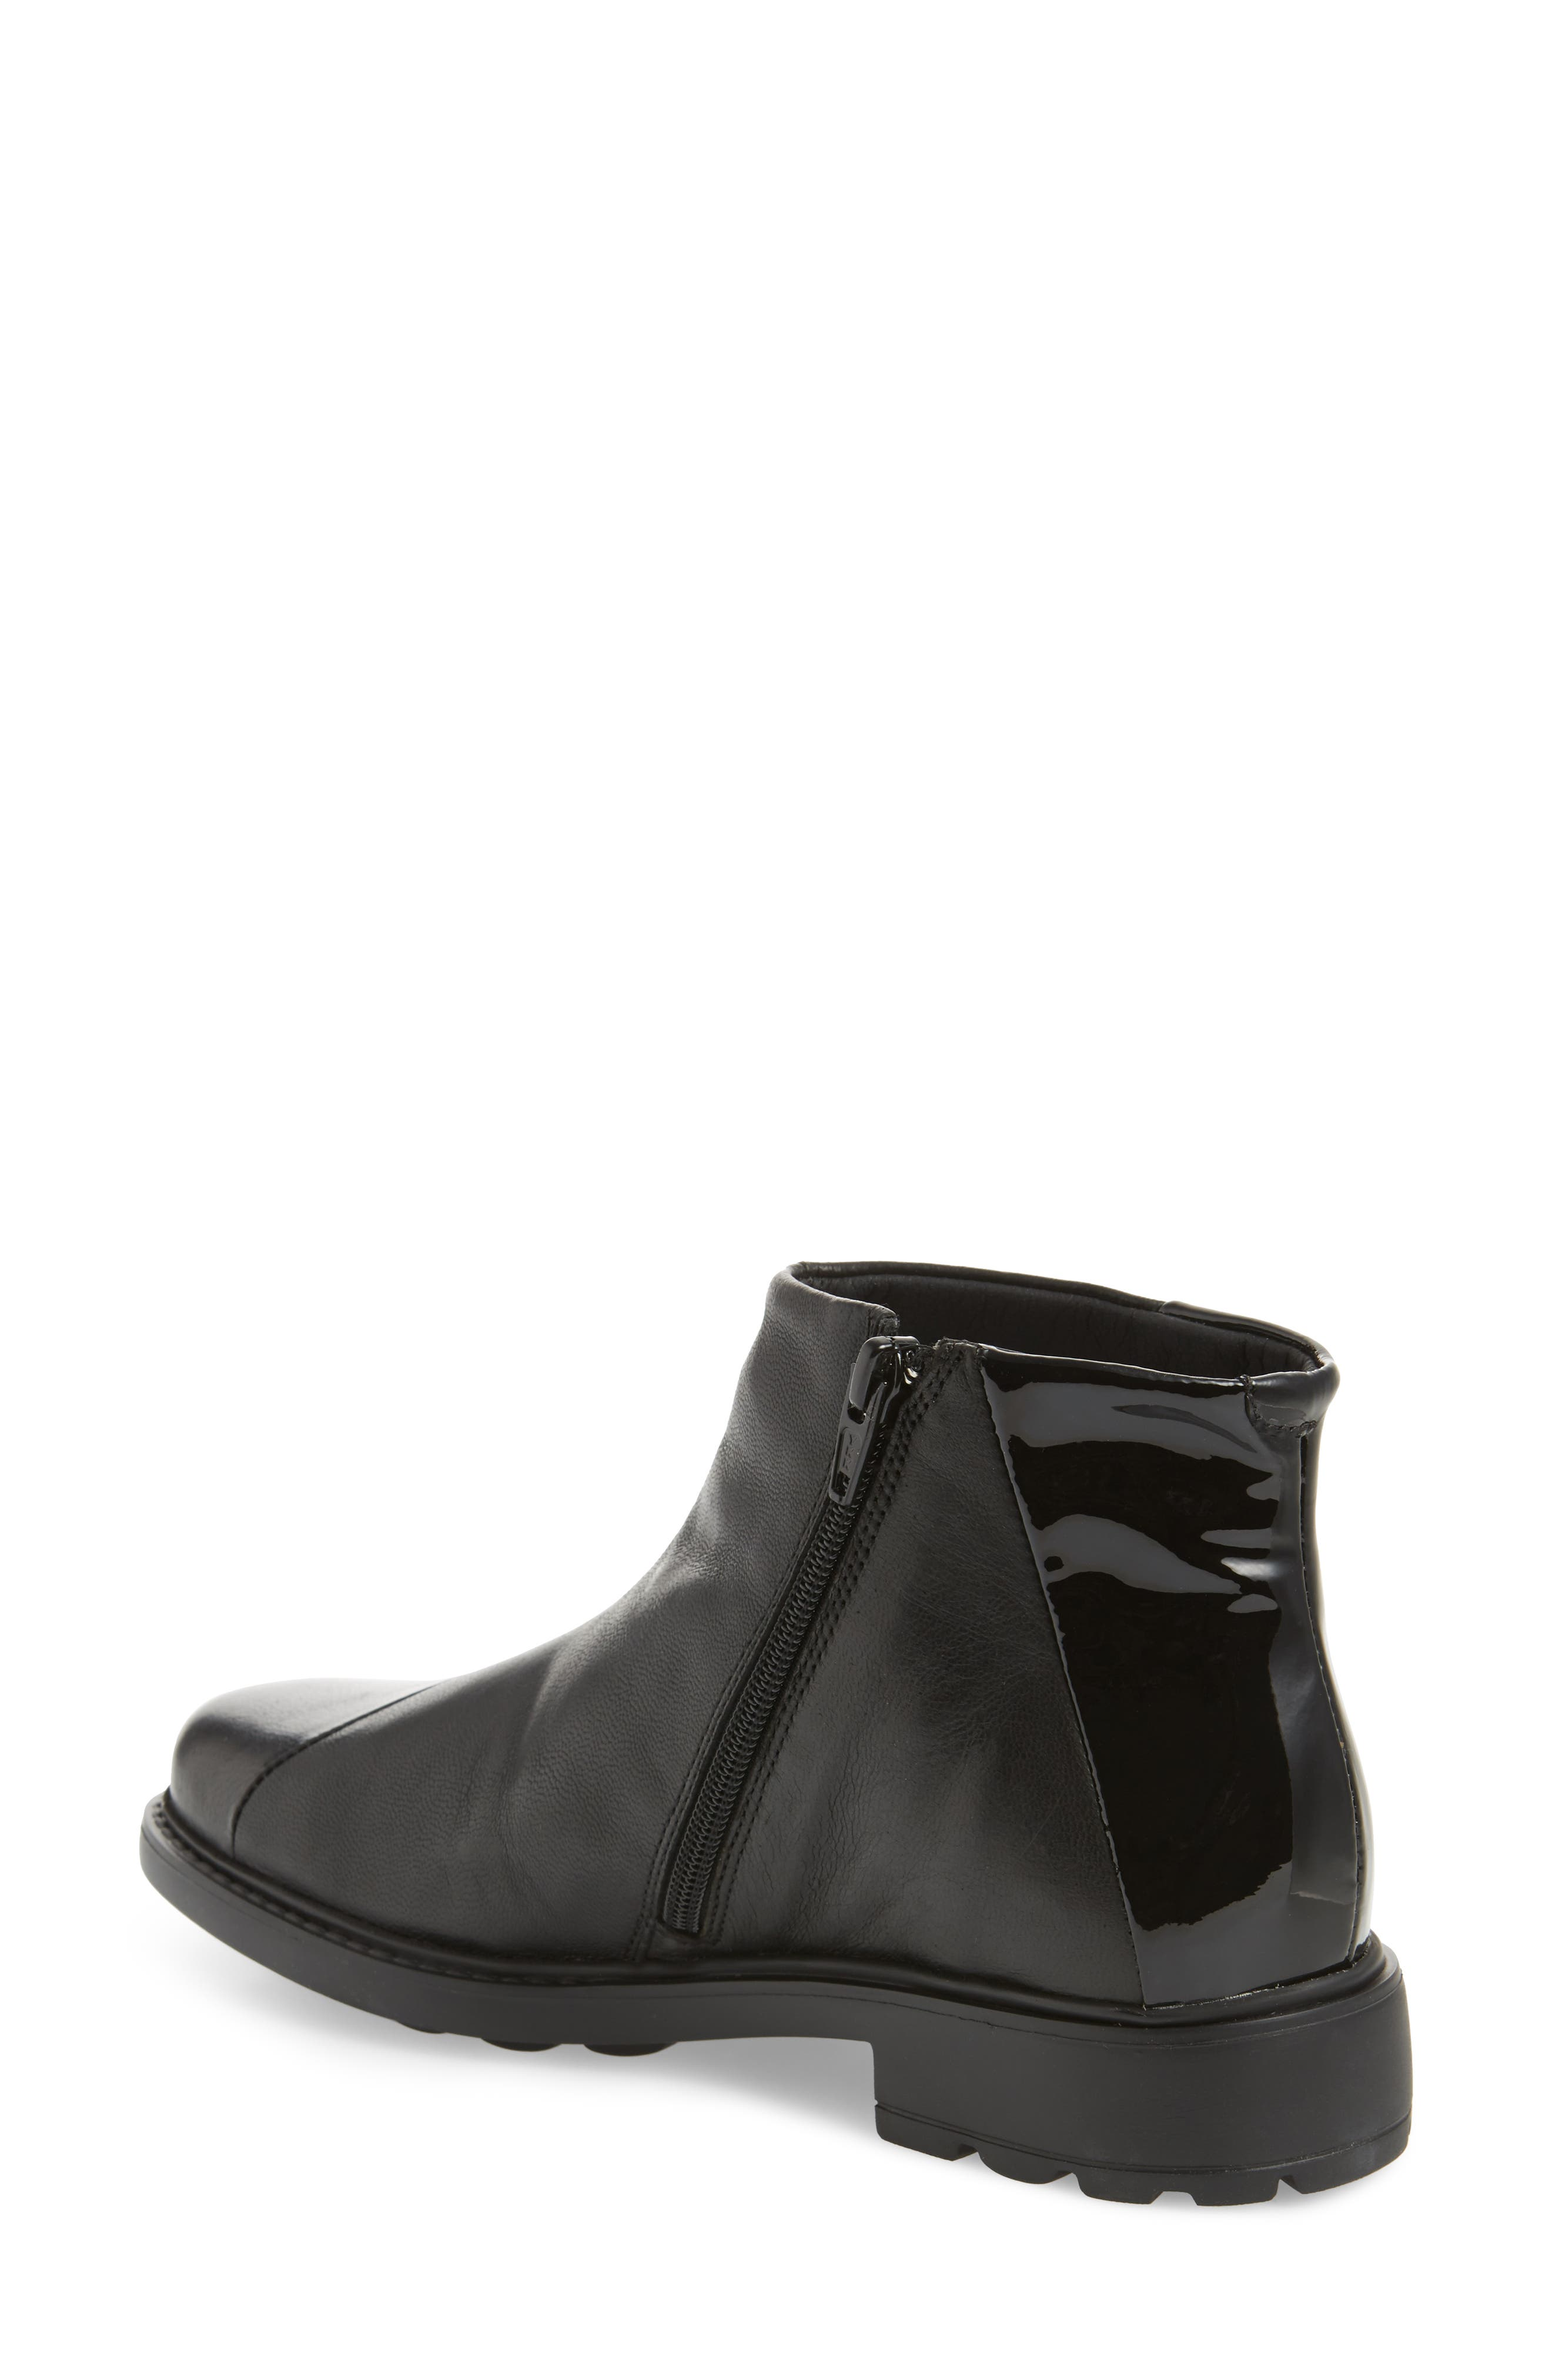 Penny Bootie,                             Alternate thumbnail 2, color,                             Black Leather